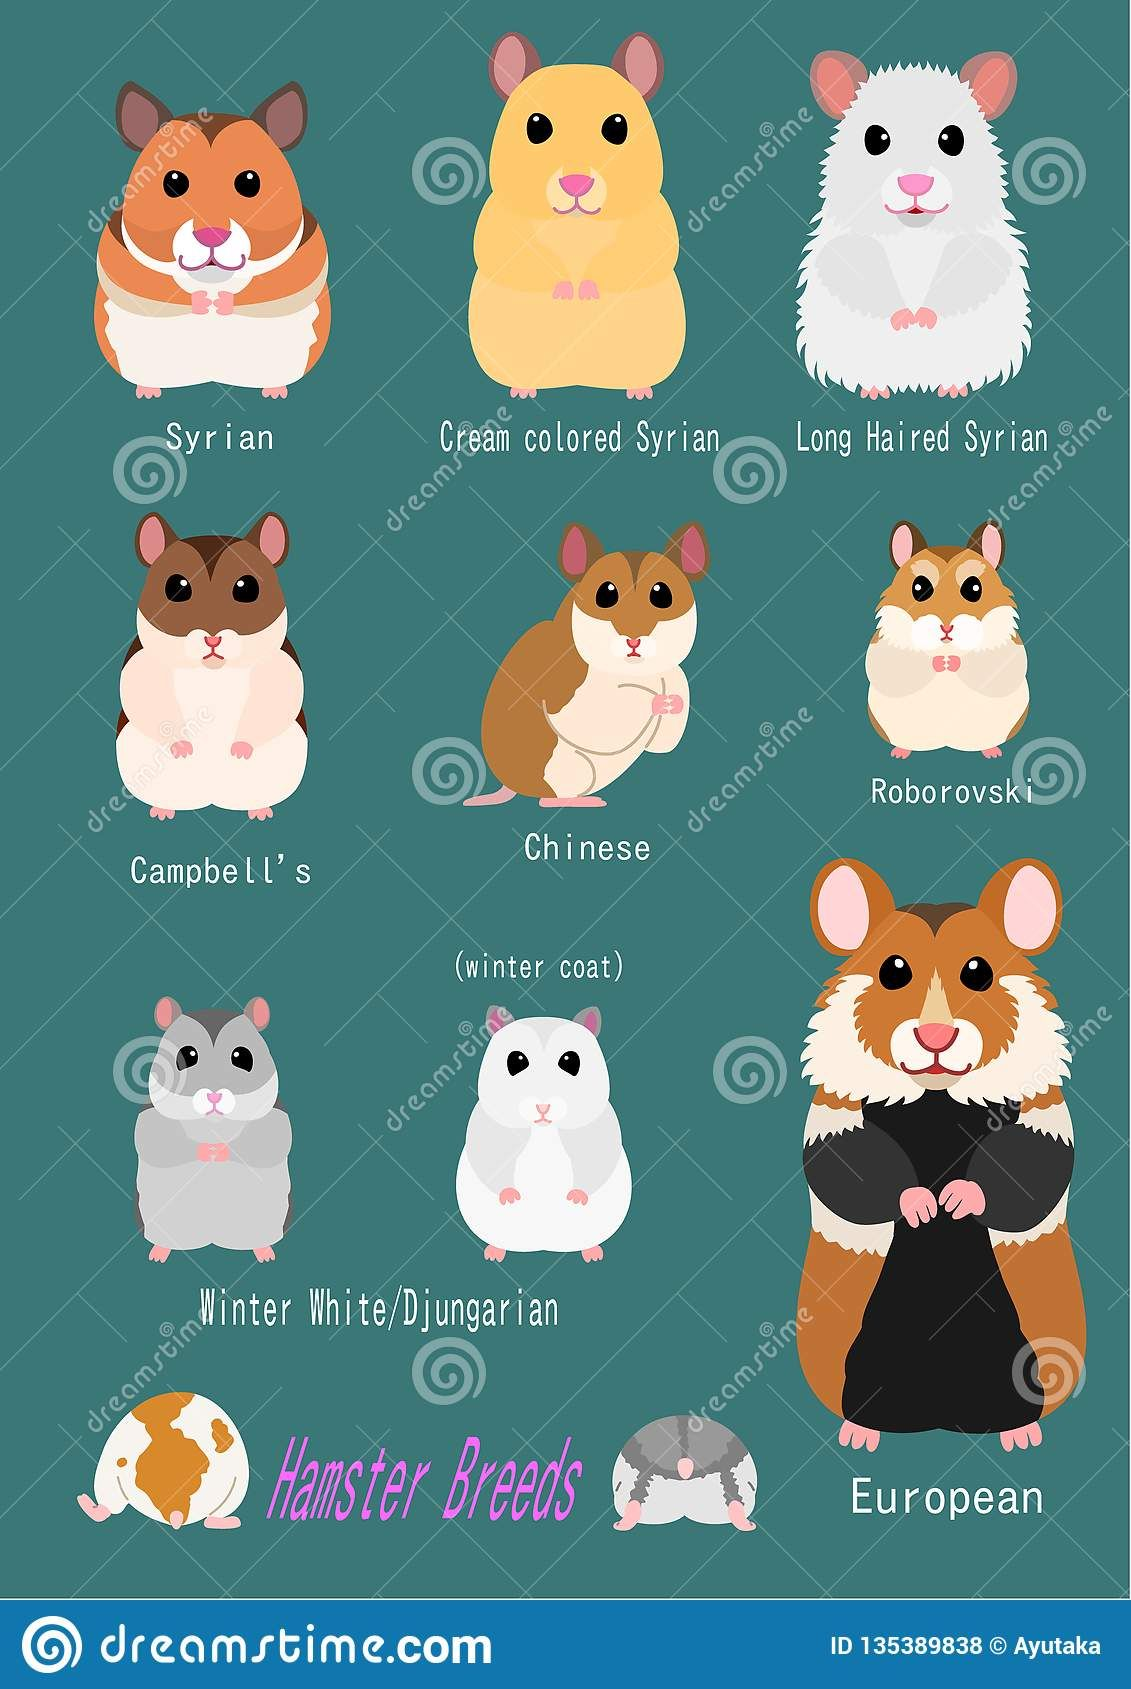 Illustration About Collection Of Hamster Breeds Various Breed Front Side With Breed Name Illustration Of European Hamster Breeds Pet Rodents Cute Hamsters